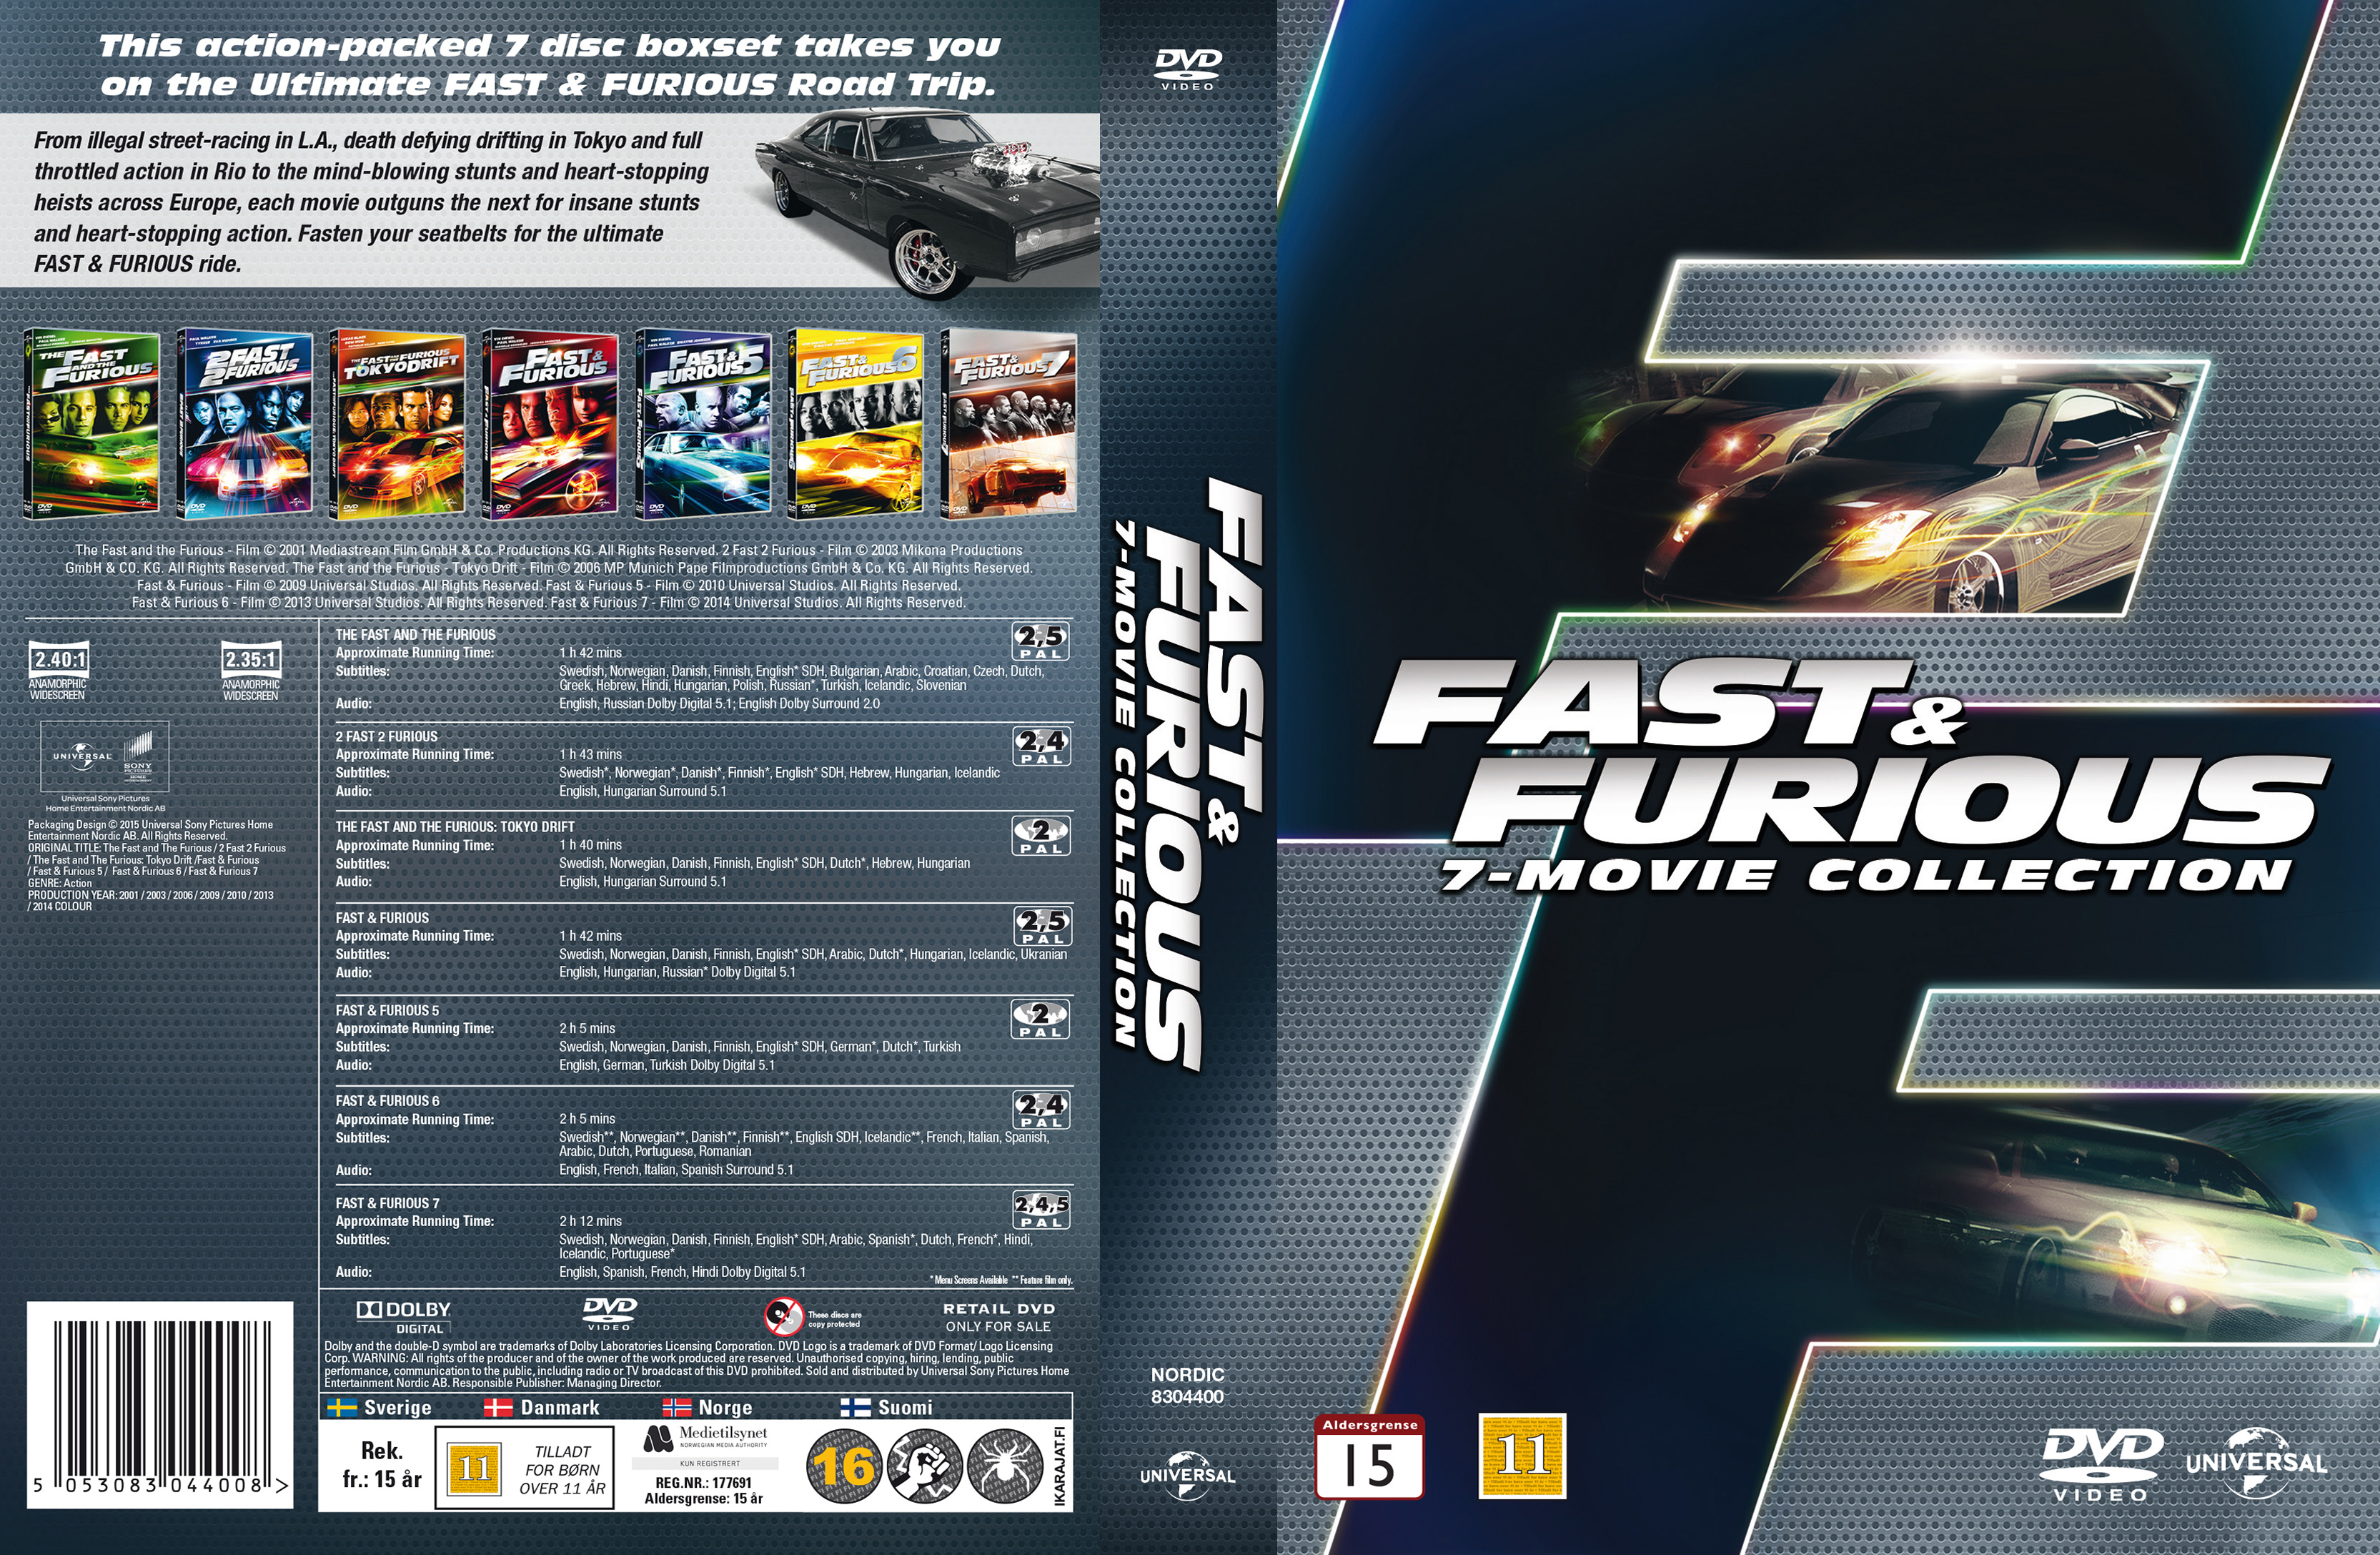 fast and furious blu ray box set best buy punjabi comedy gurpreet ghuggi youtube. Black Bedroom Furniture Sets. Home Design Ideas